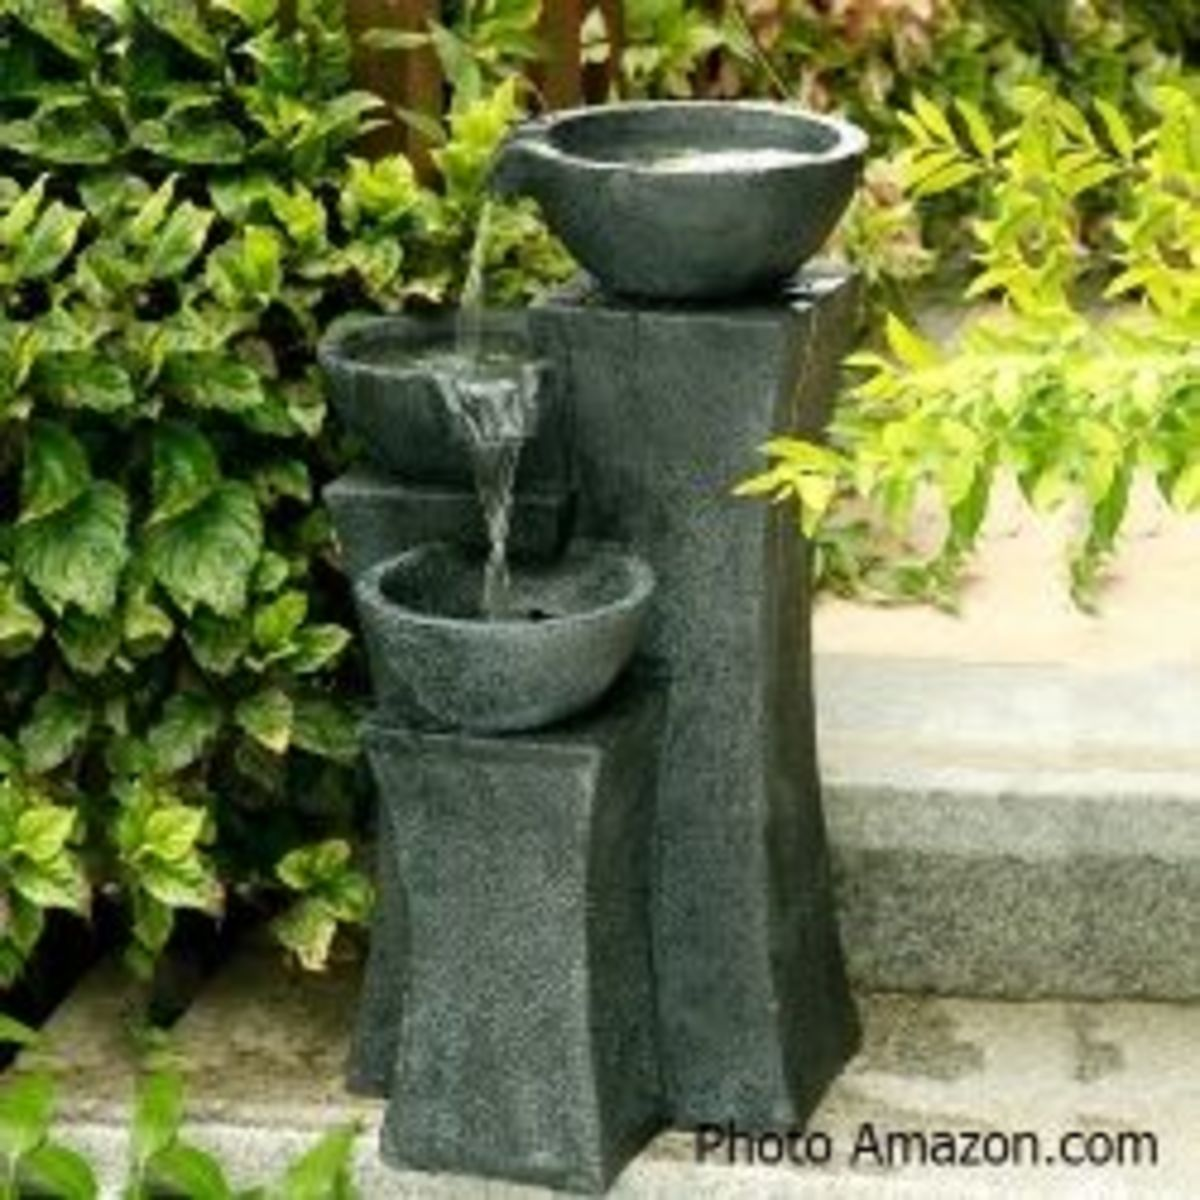 Beautiful Garden Water Fountains For Your Garden Decor